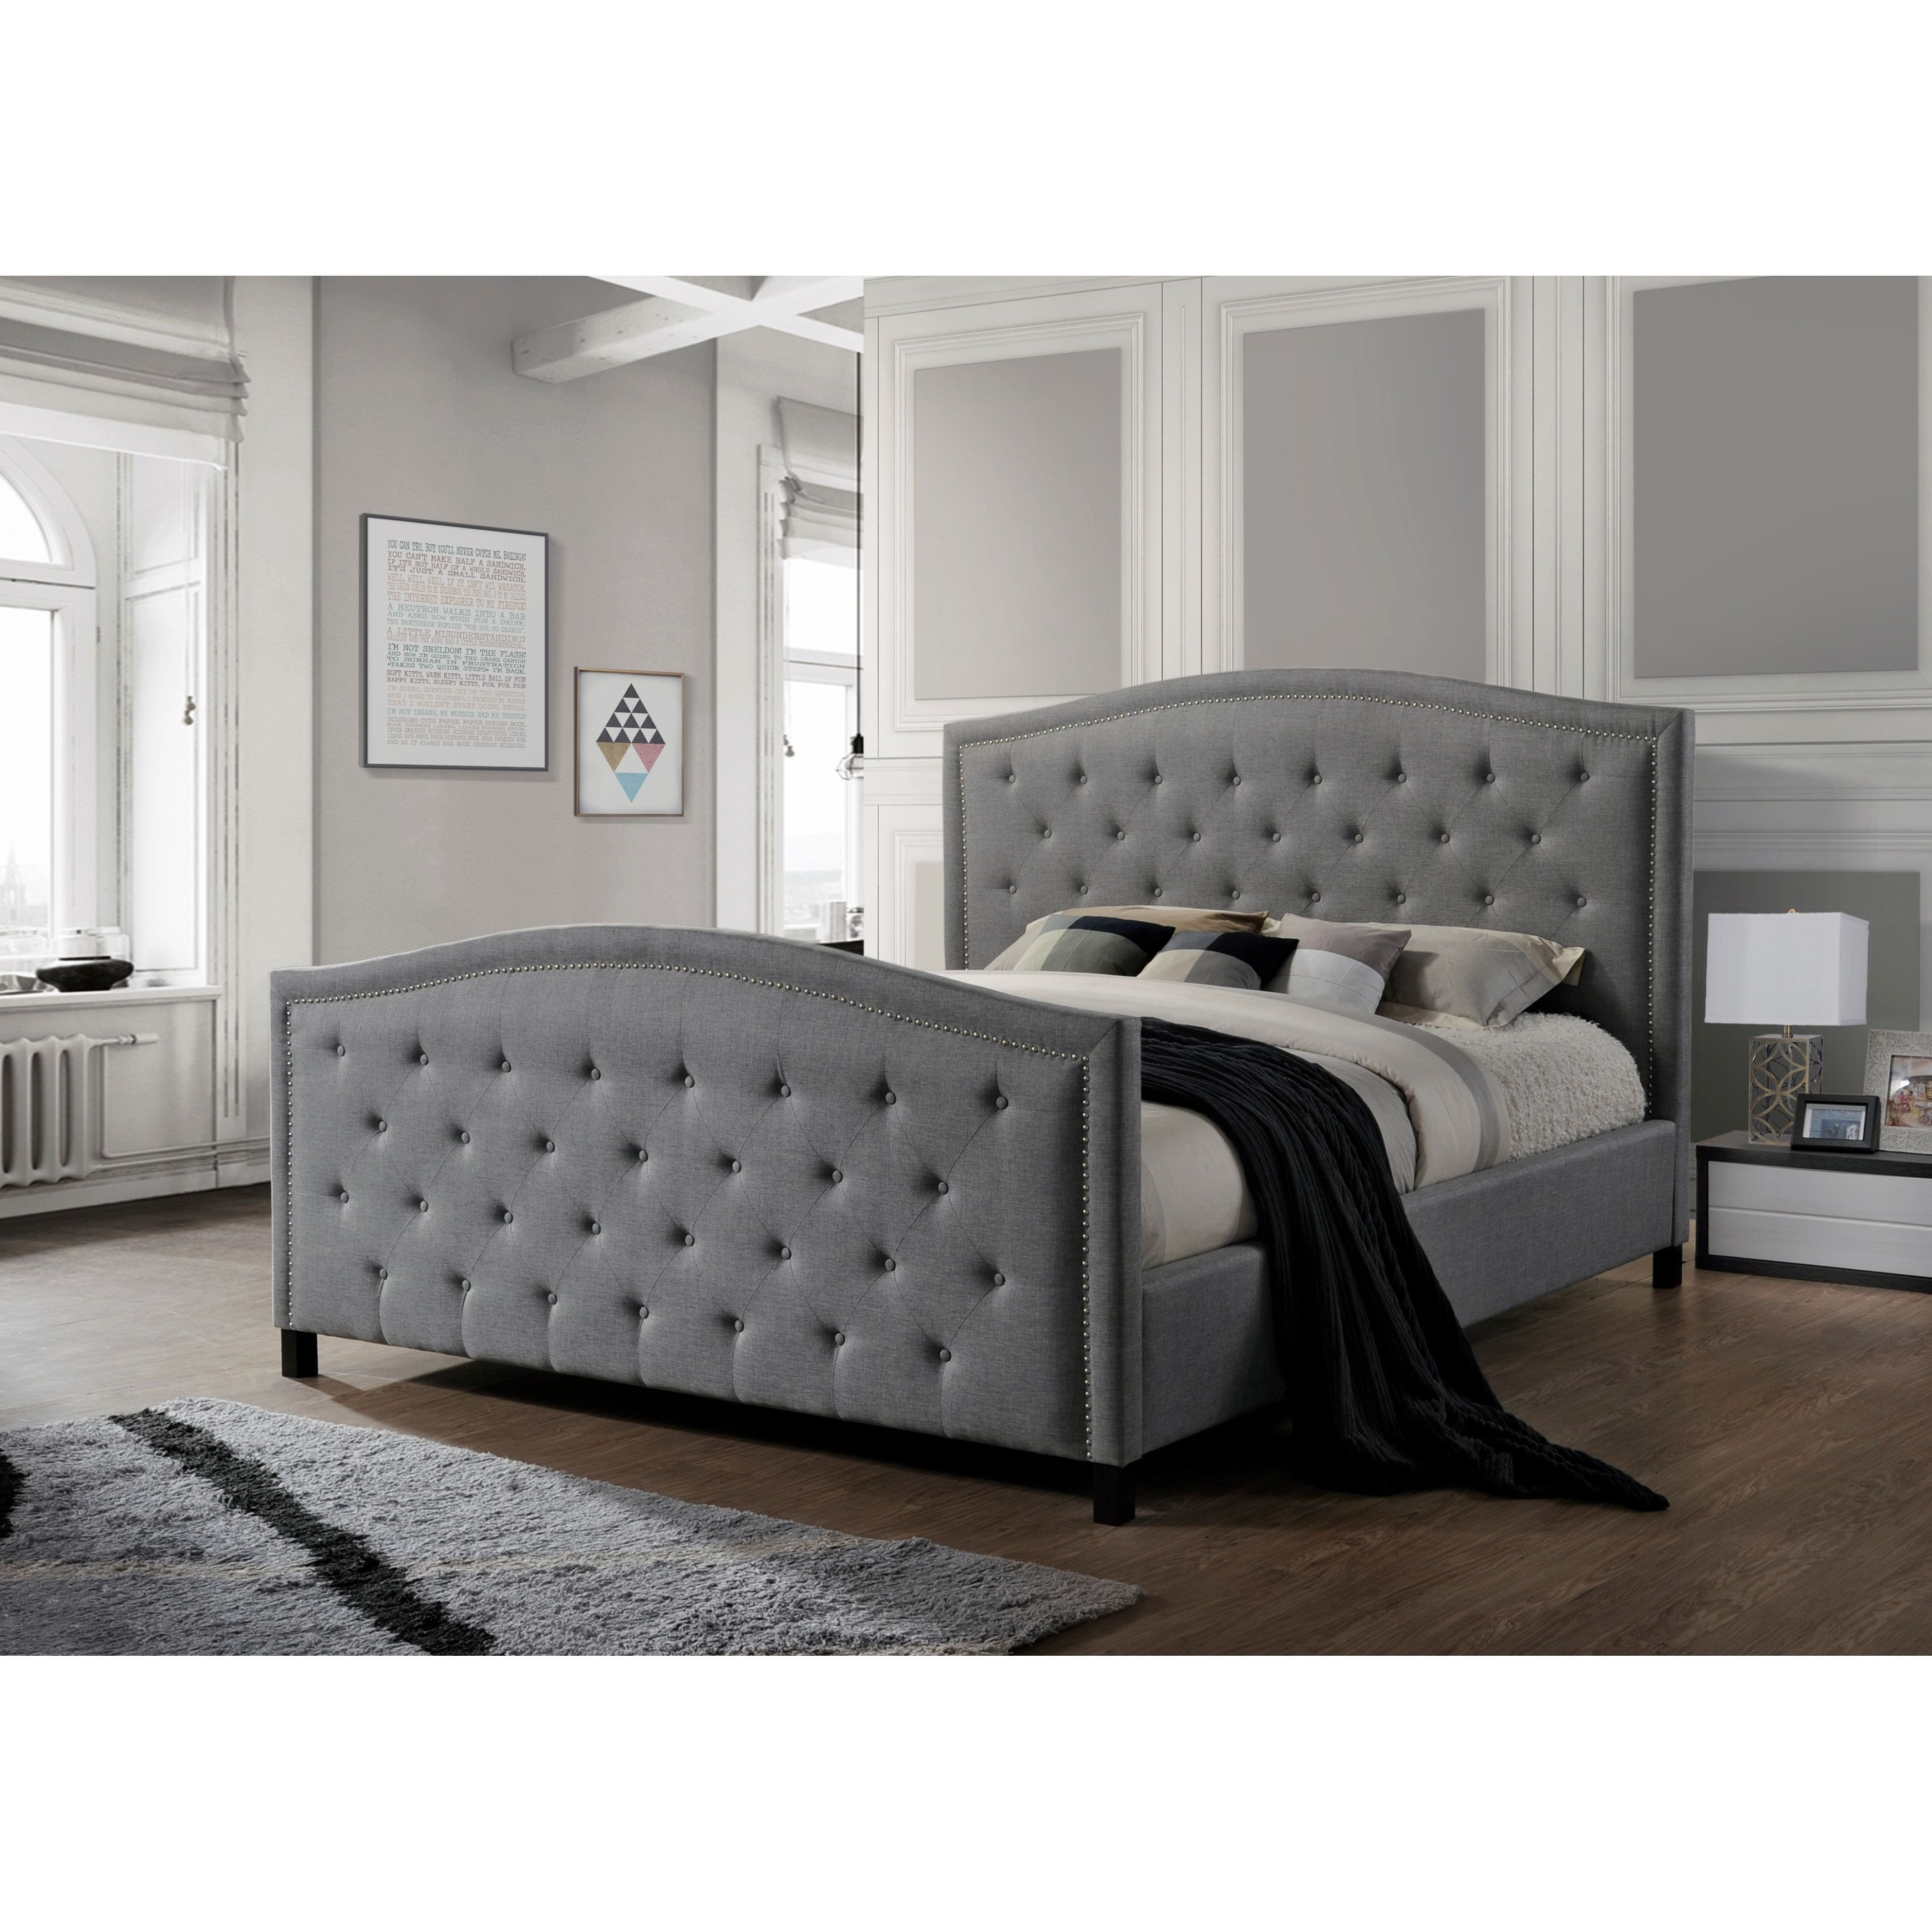 Luxeo Camden Tufted Grey Upholstered King Size Bed Grey